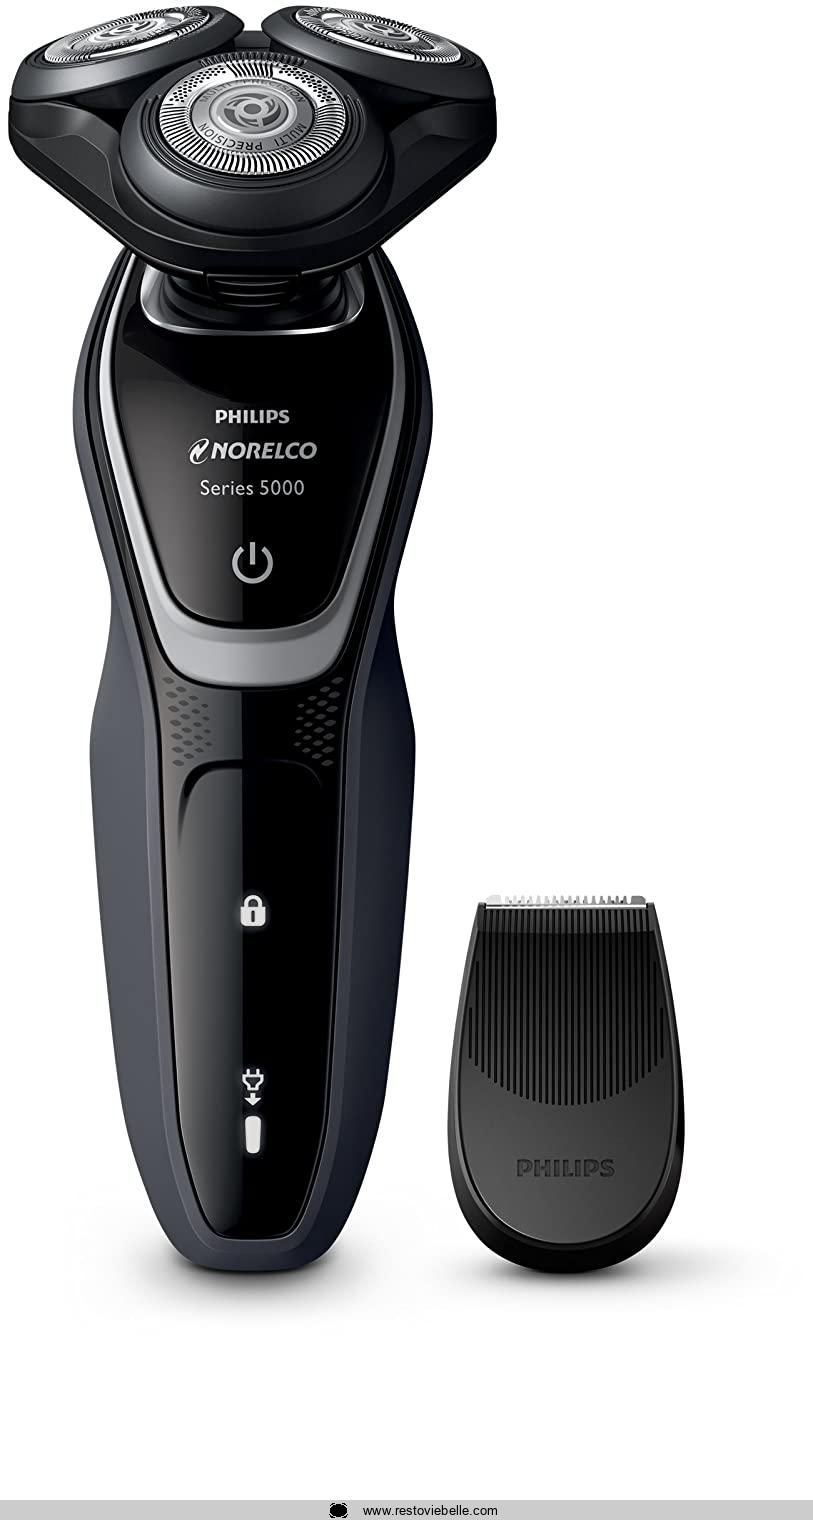 Philips Norelco 5100 Electric Shaver Wet & Dry